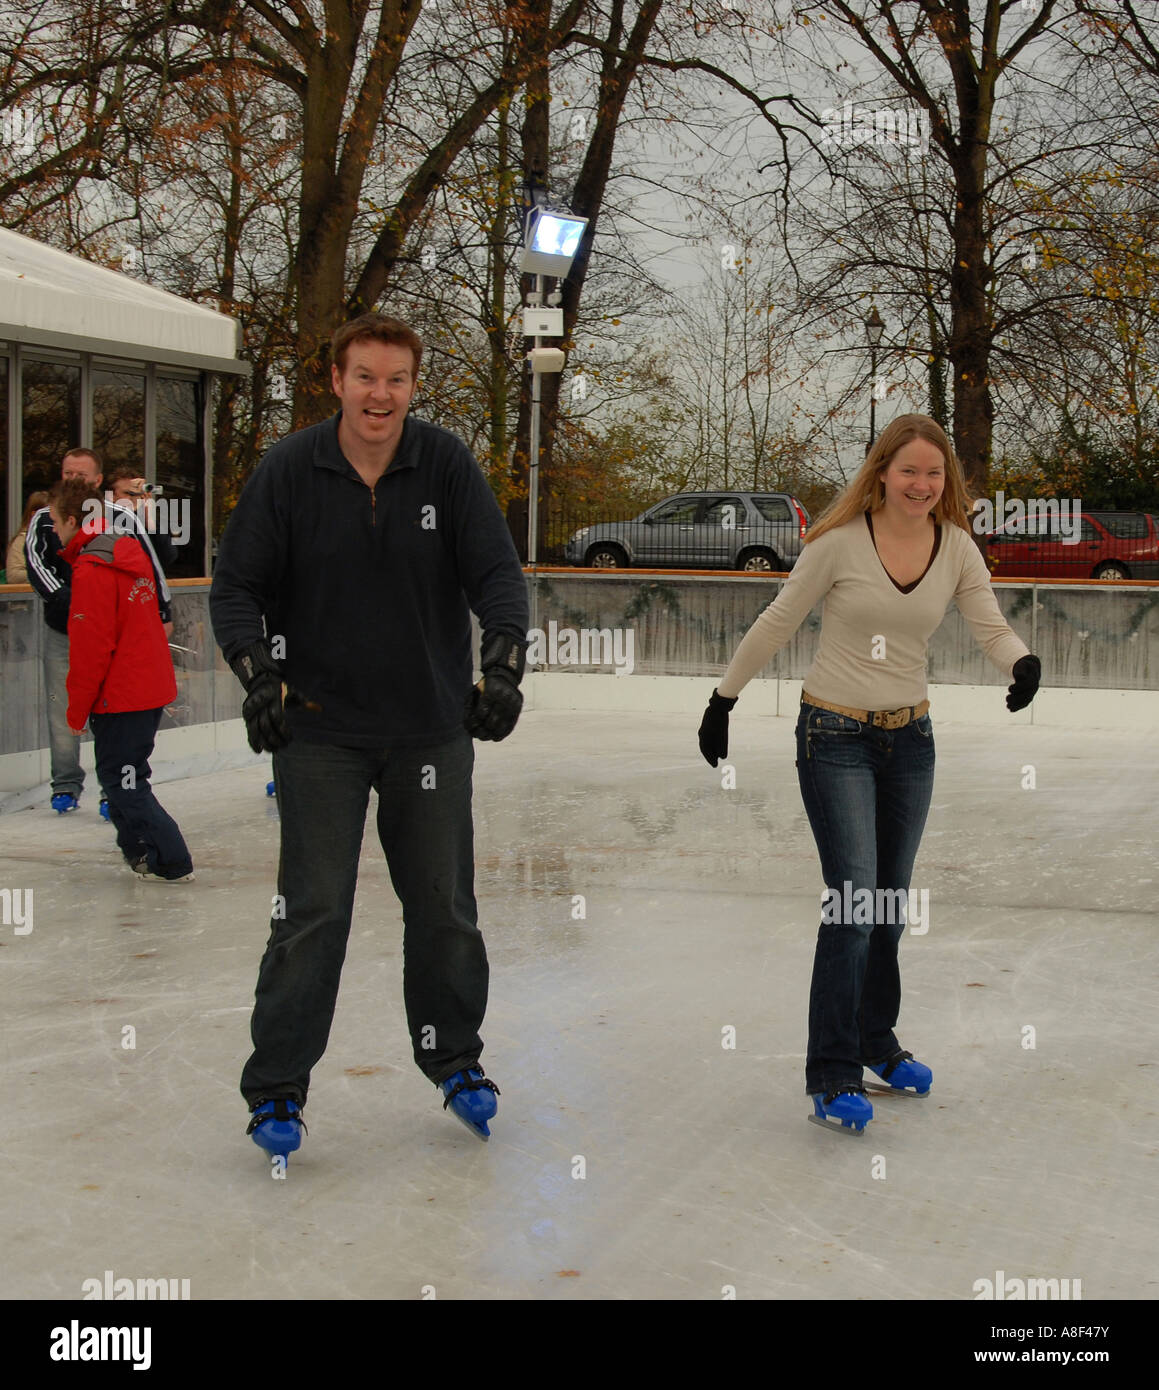 Visitors to Windsor, England, having fun on a temporary skating rink close to Windsor Castle - Stock Image